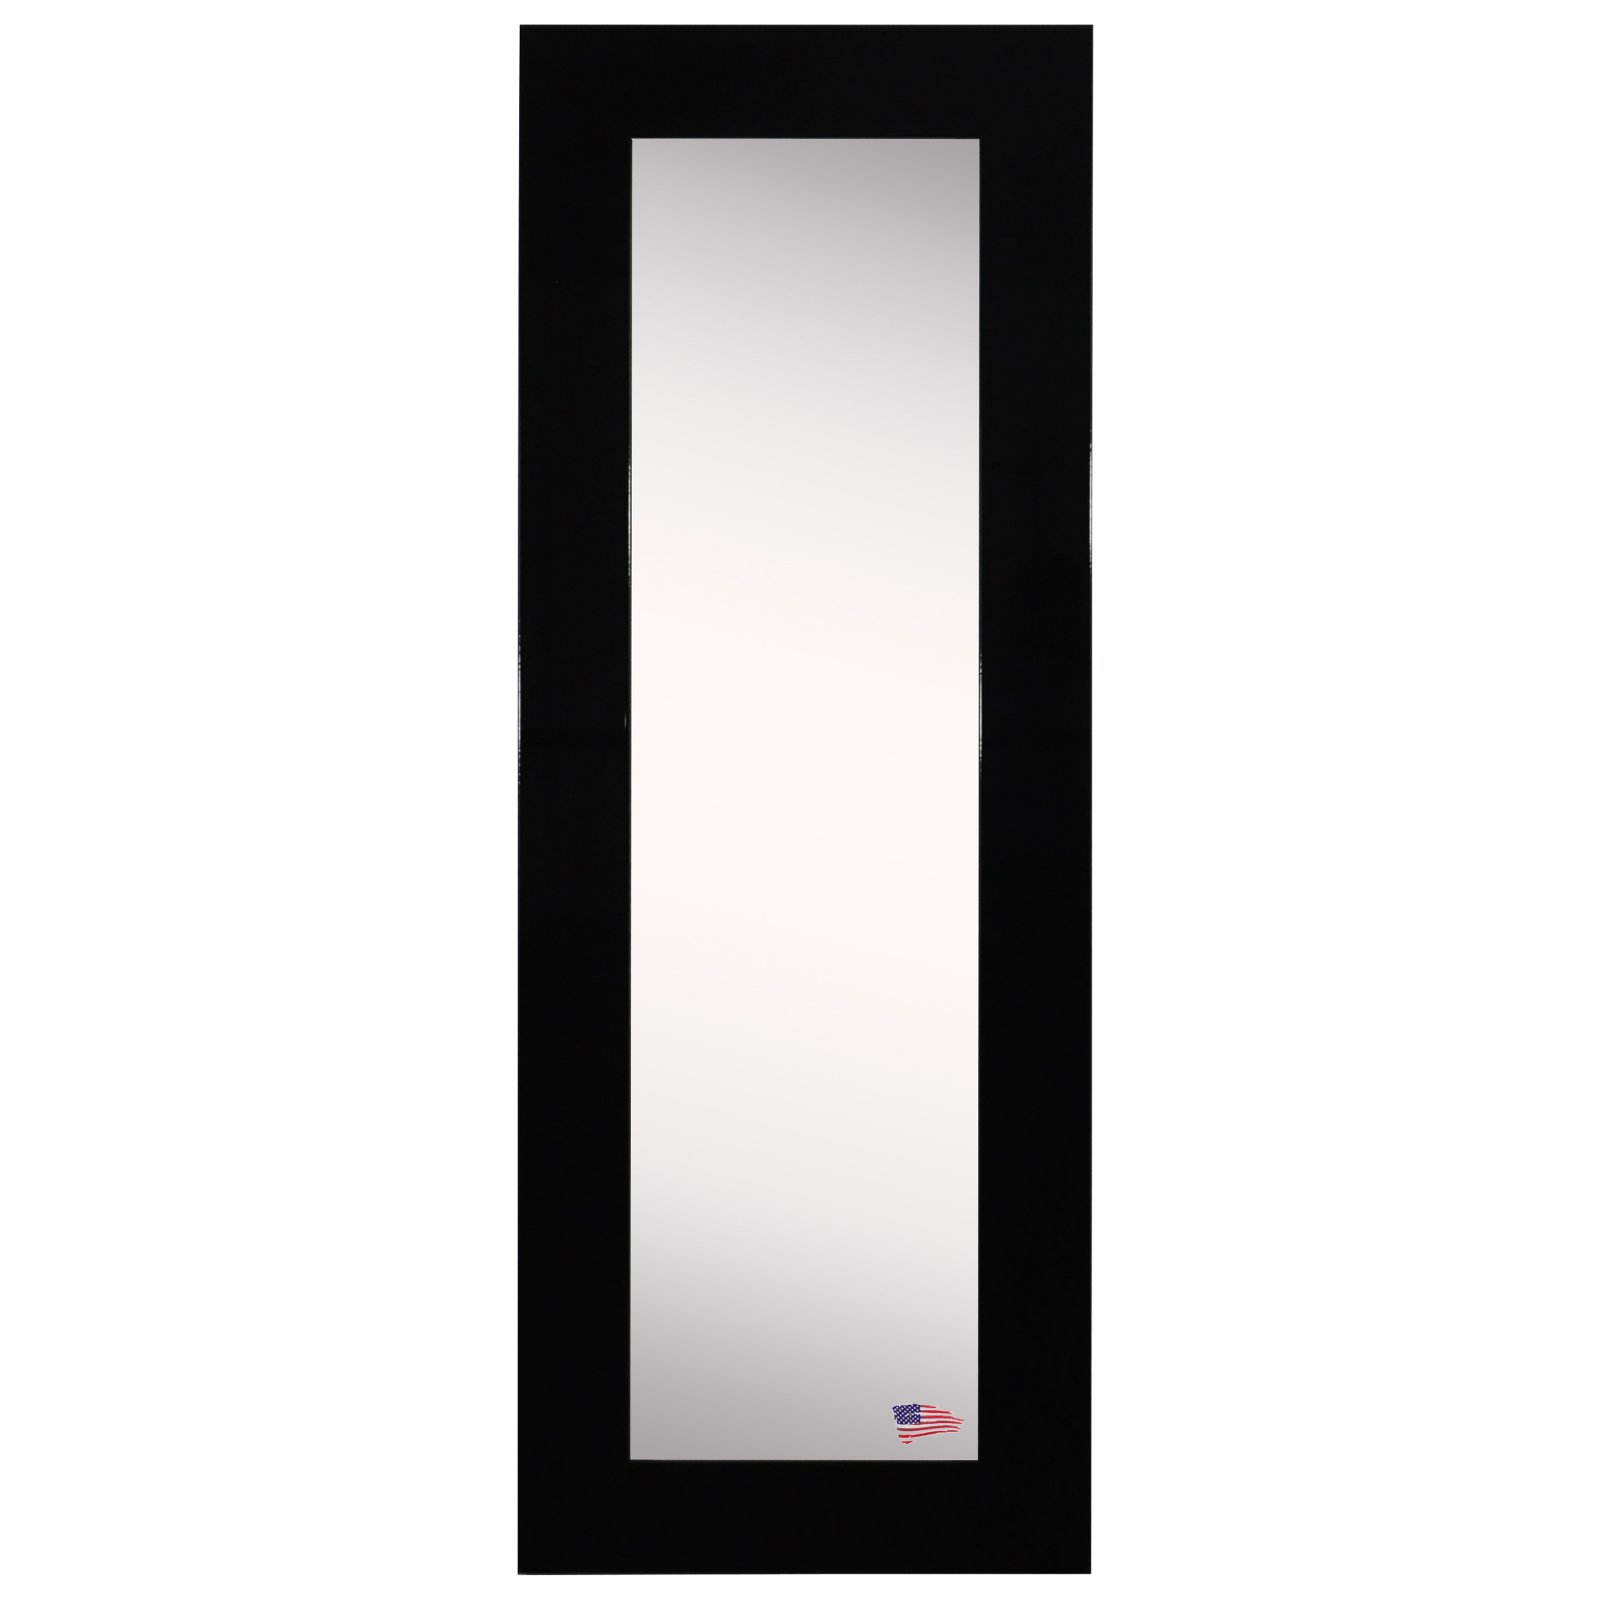 Rayne Mirrors Delta Slender Body Bathroom Vanity Mirror by Overstock